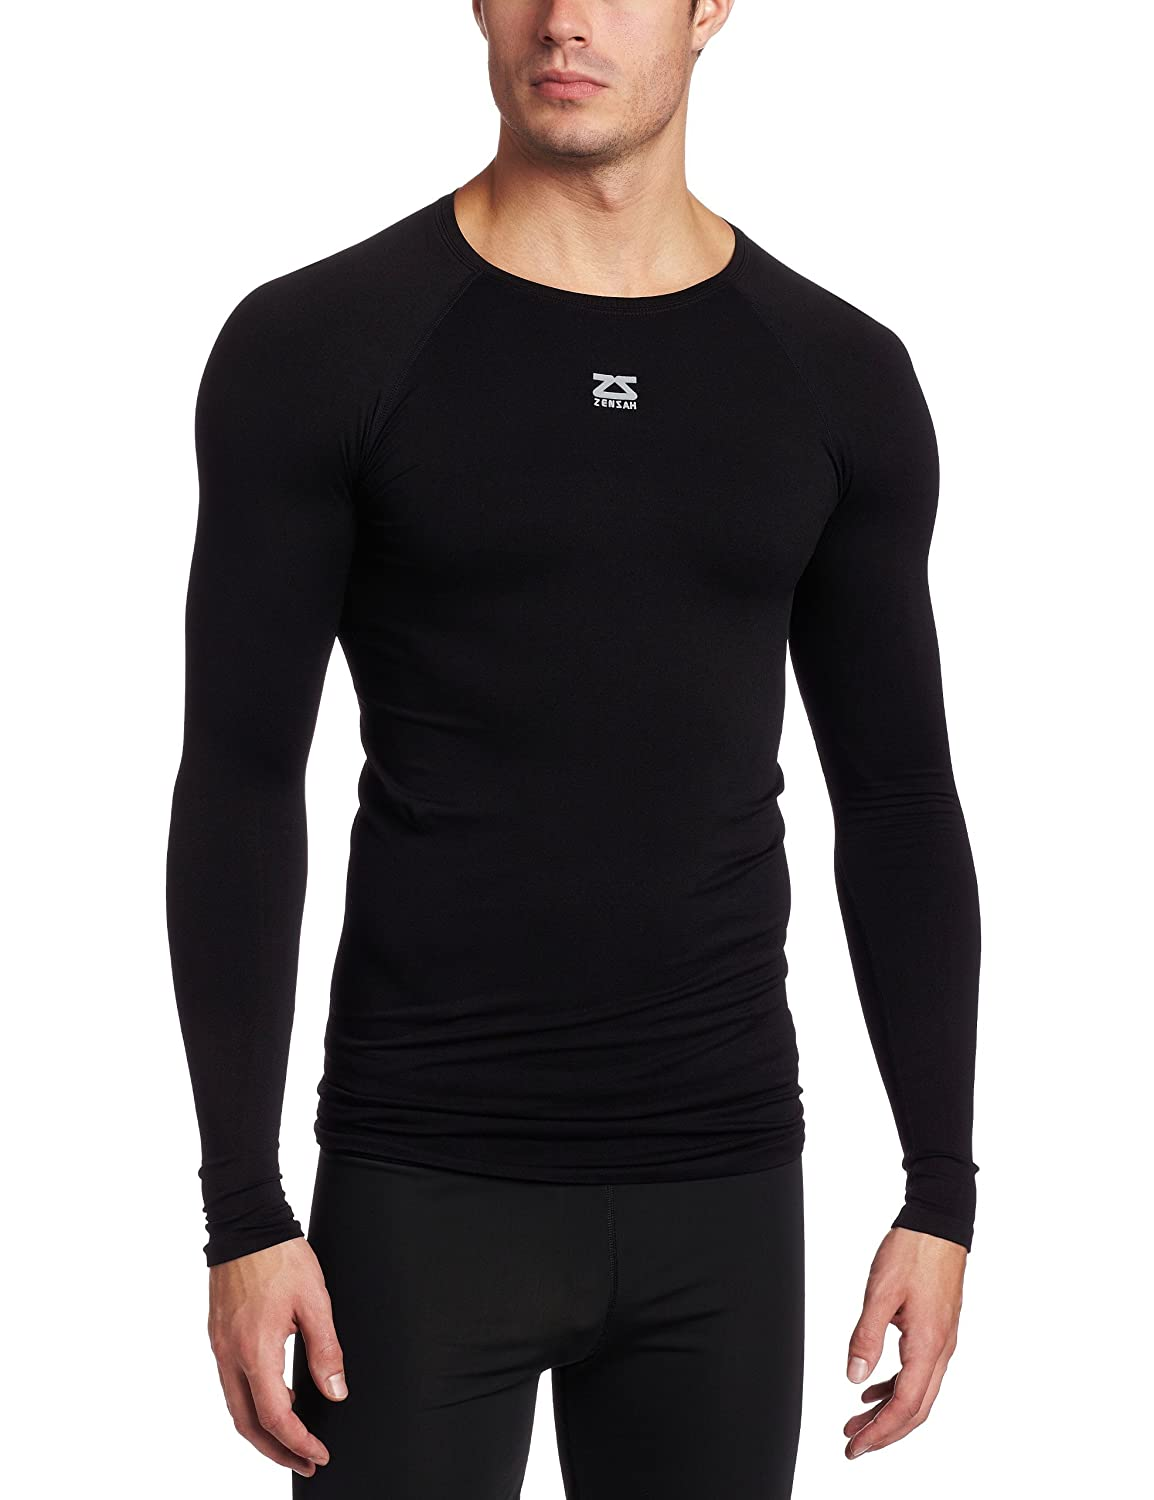 Zensah Long Sleeve Kompressionsshirt